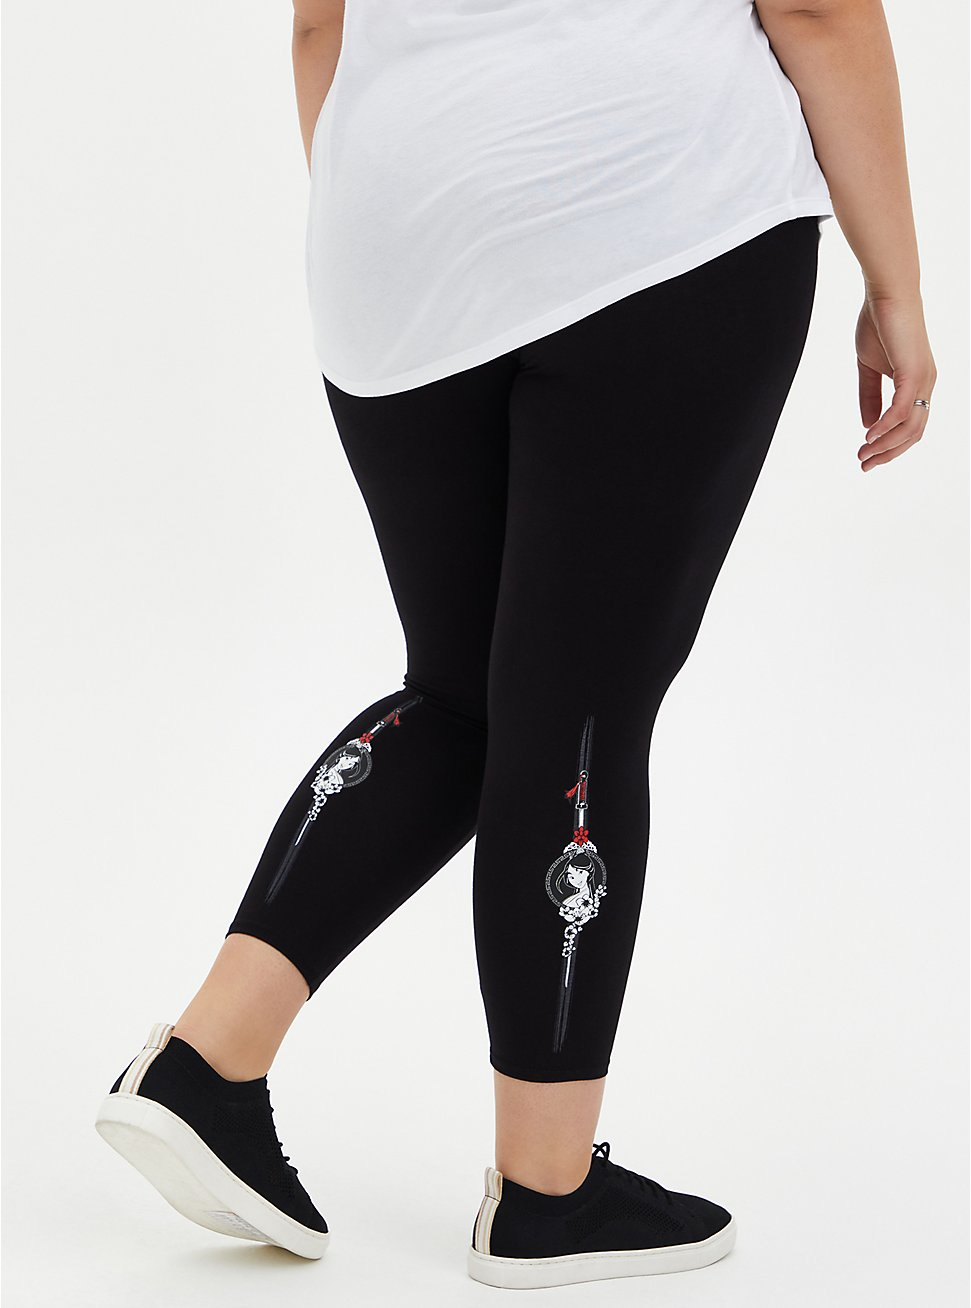 Disney Mulan Black Crop Legging, BLACK, hi-res